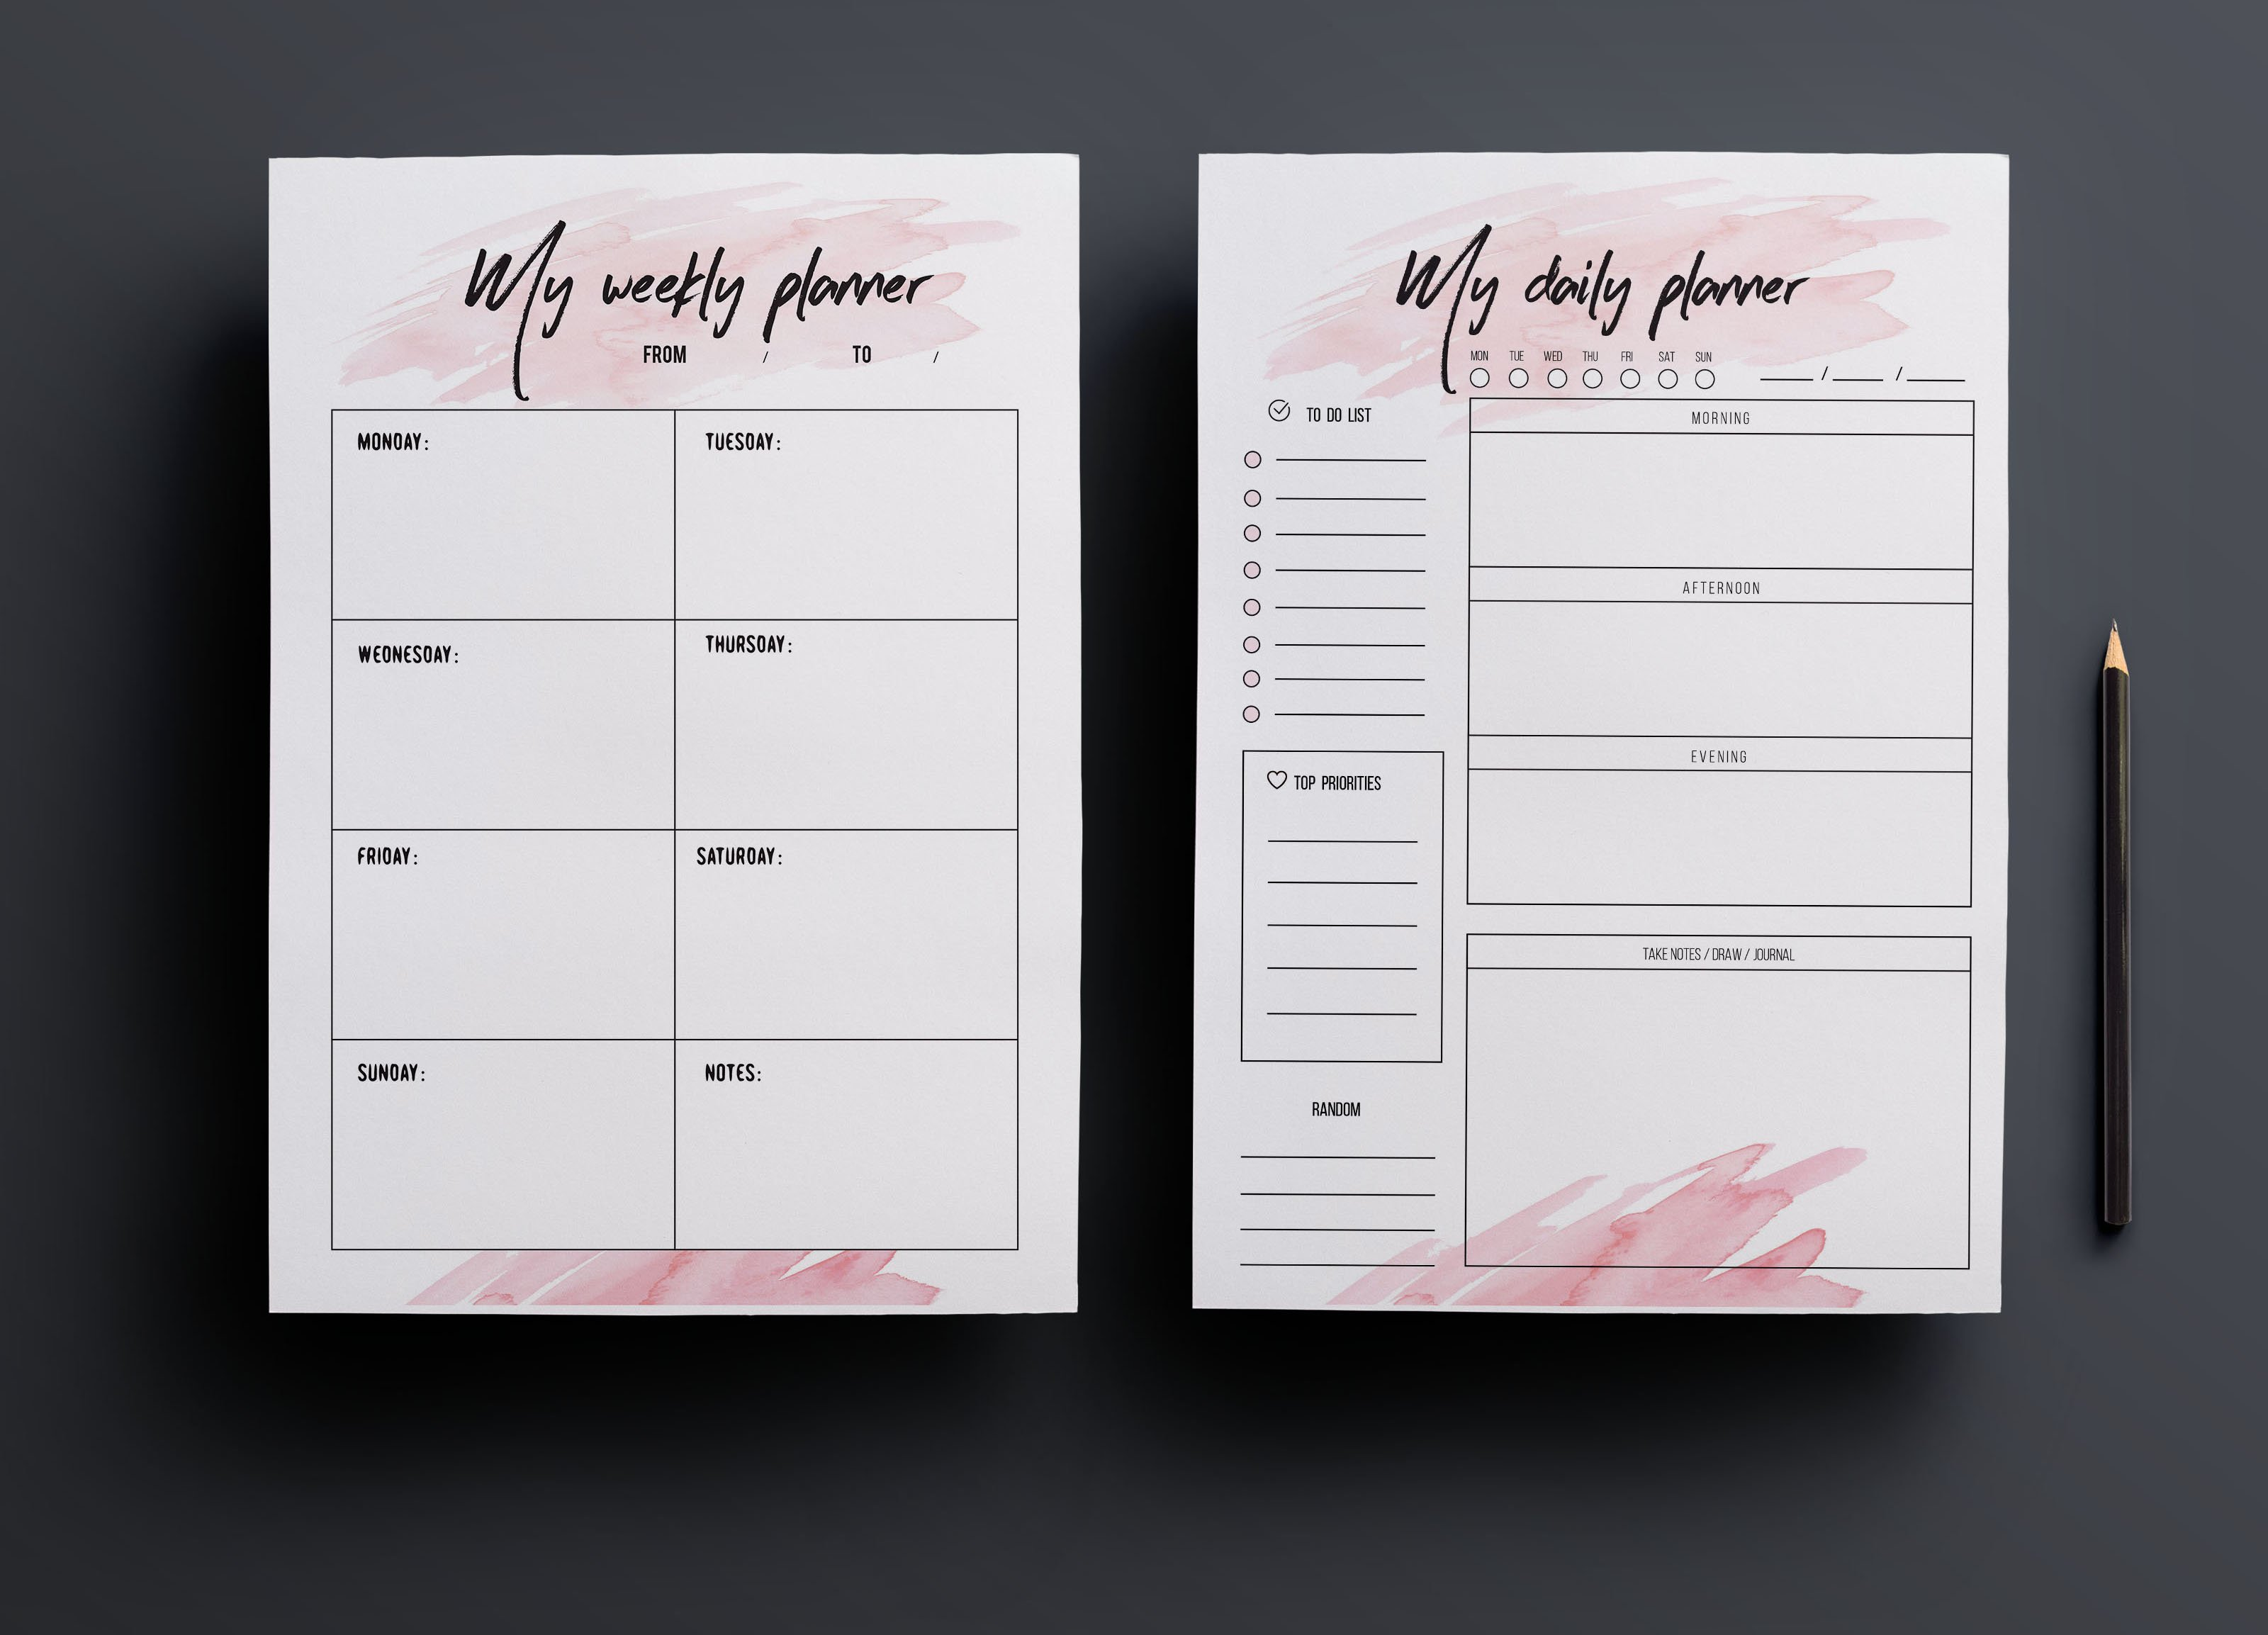 Weekly planner daily planner stationery templates for Planner design